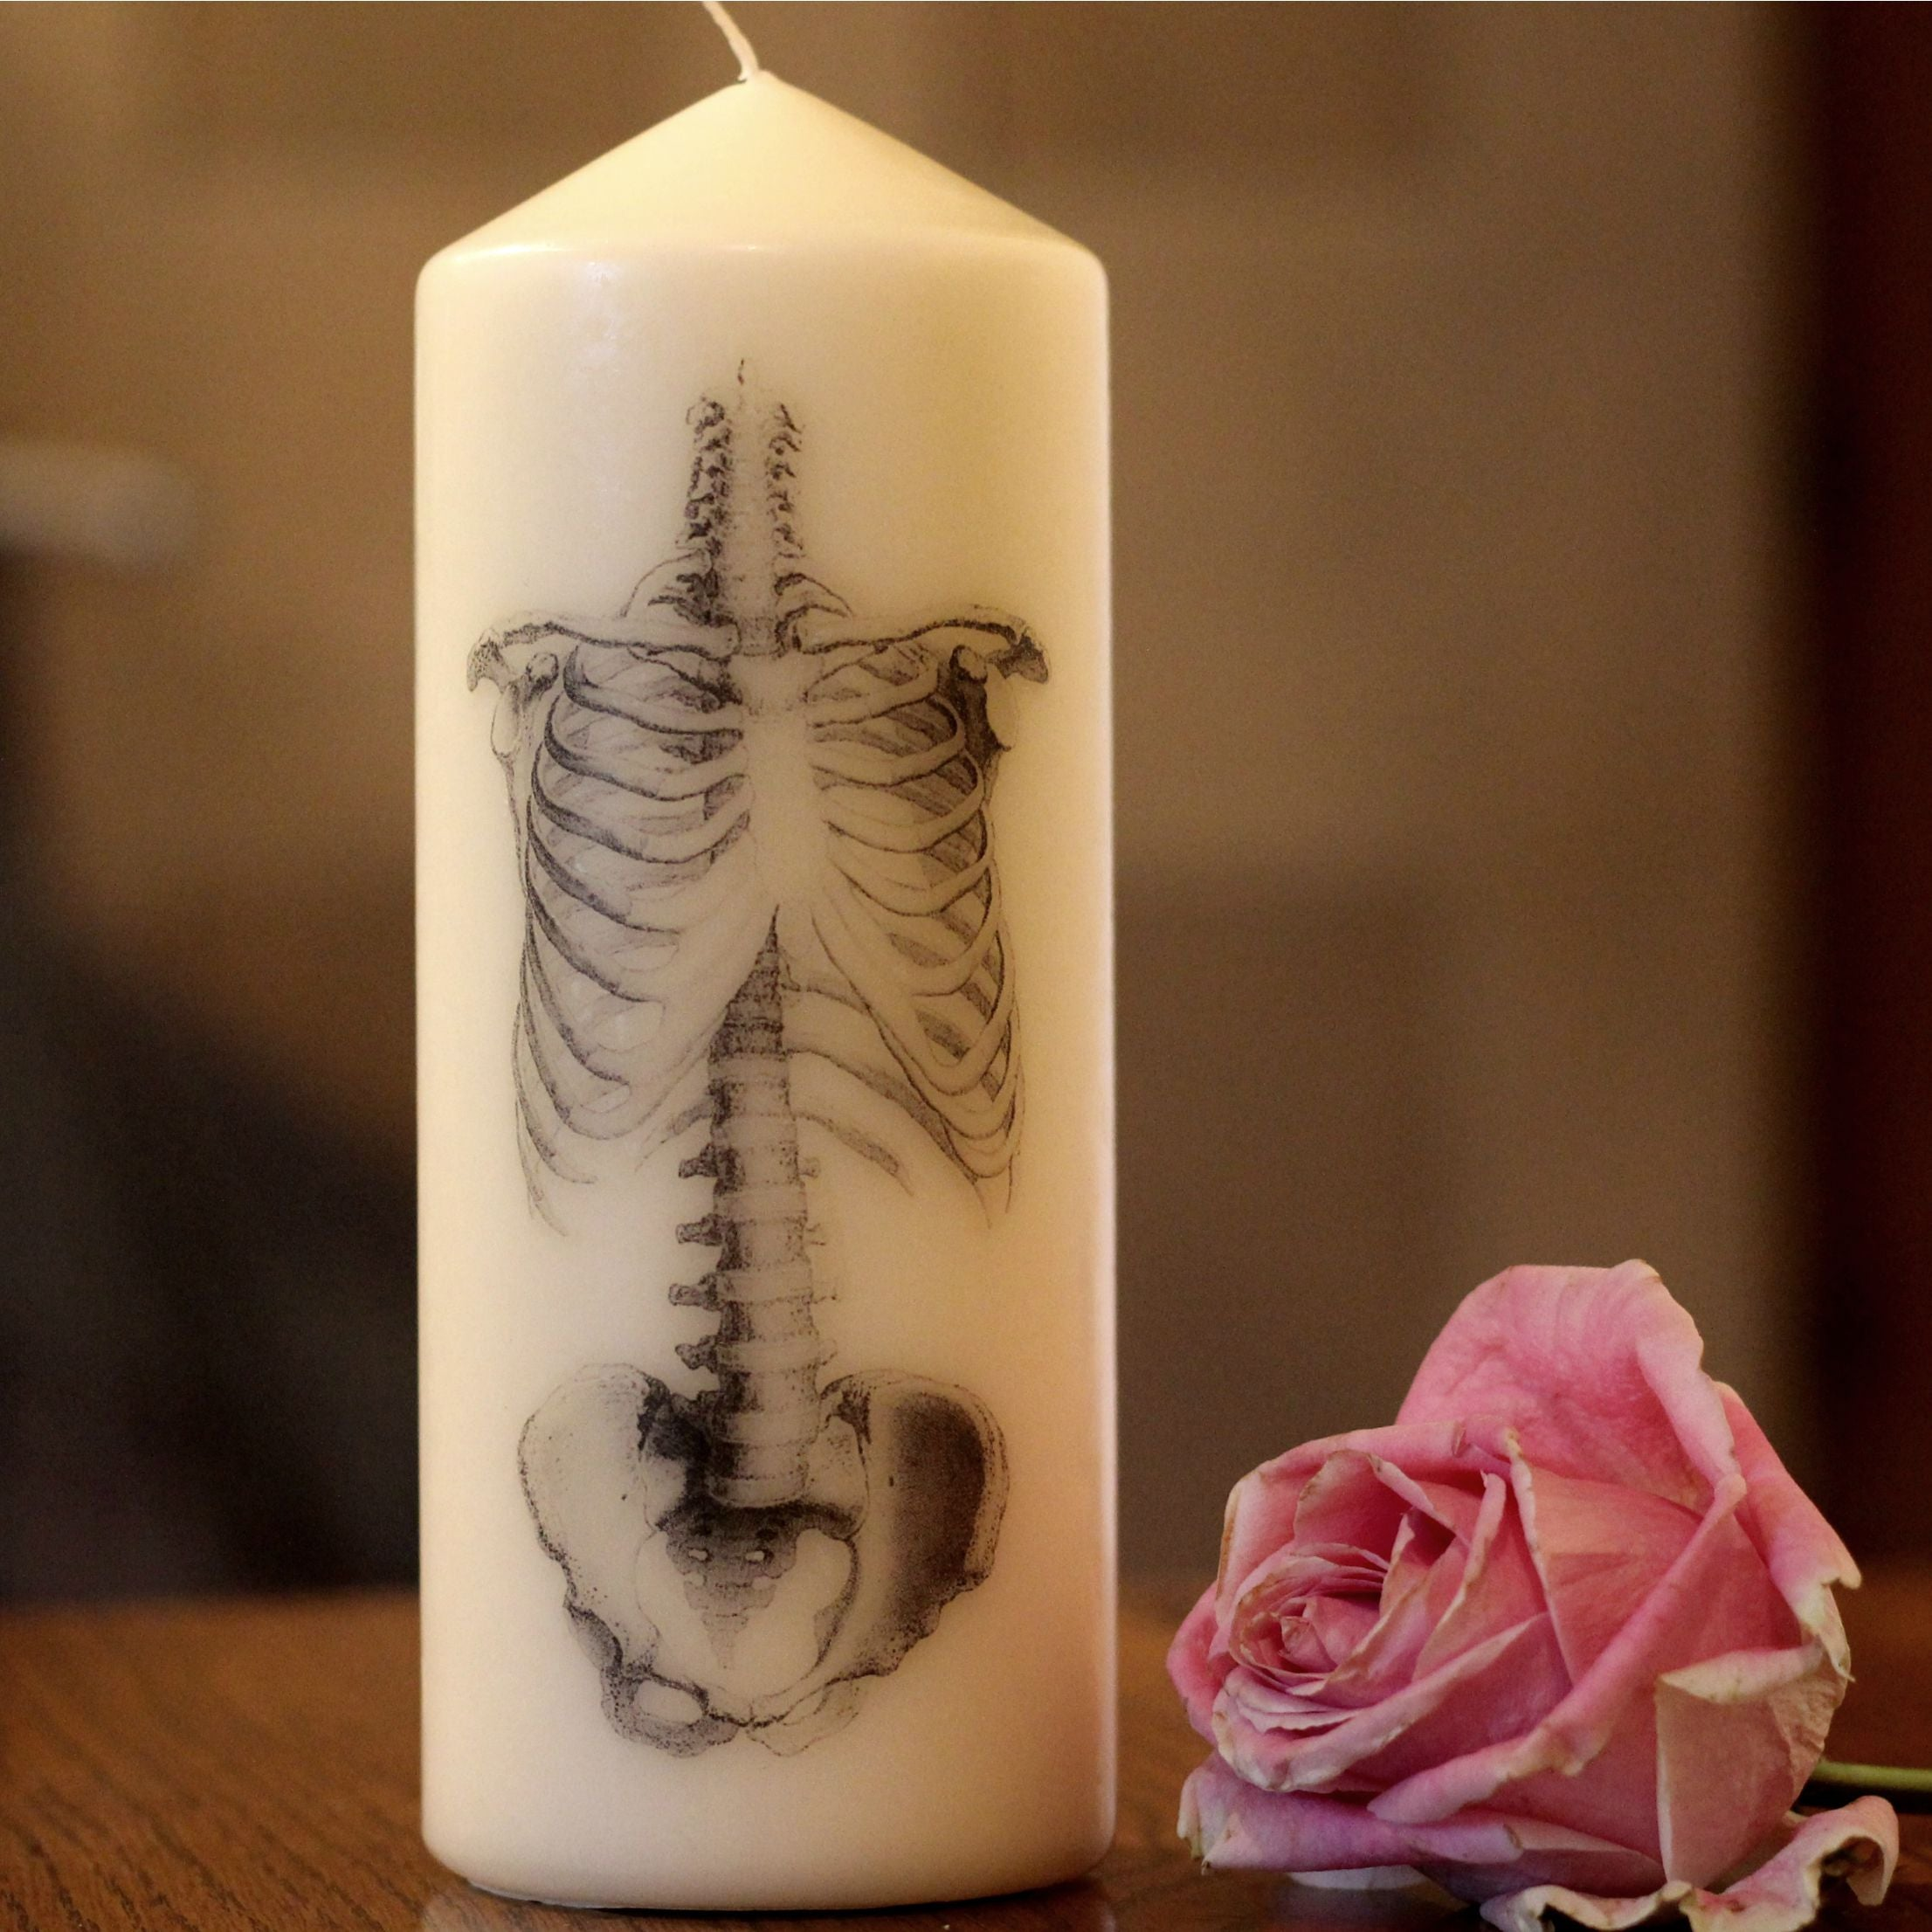 Anatomical Spine Candle - ByCandlelight27